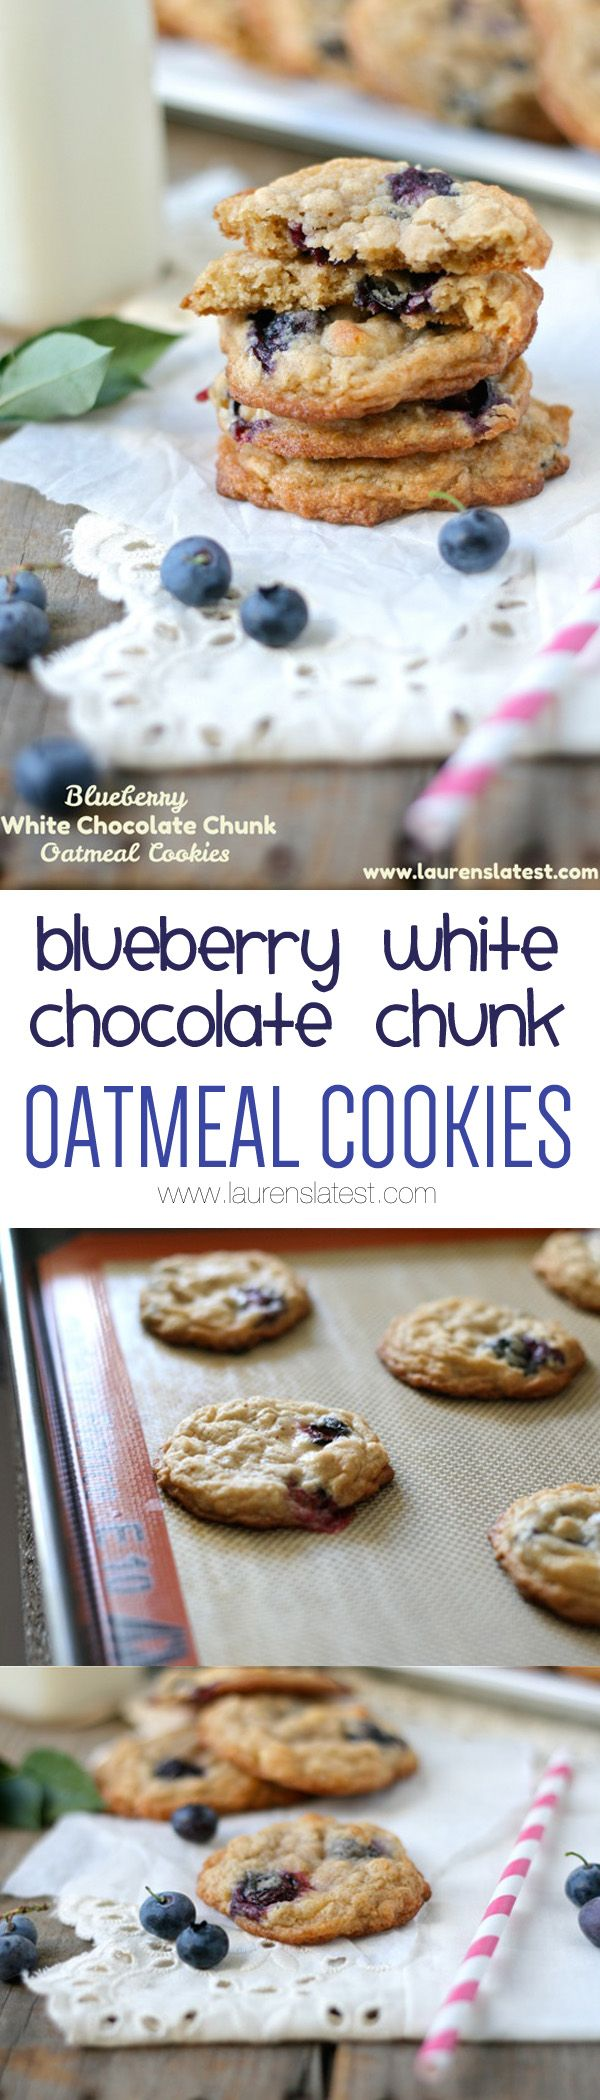 17 Best ideas about Gourmet Cookies on Pinterest | Cookie ...